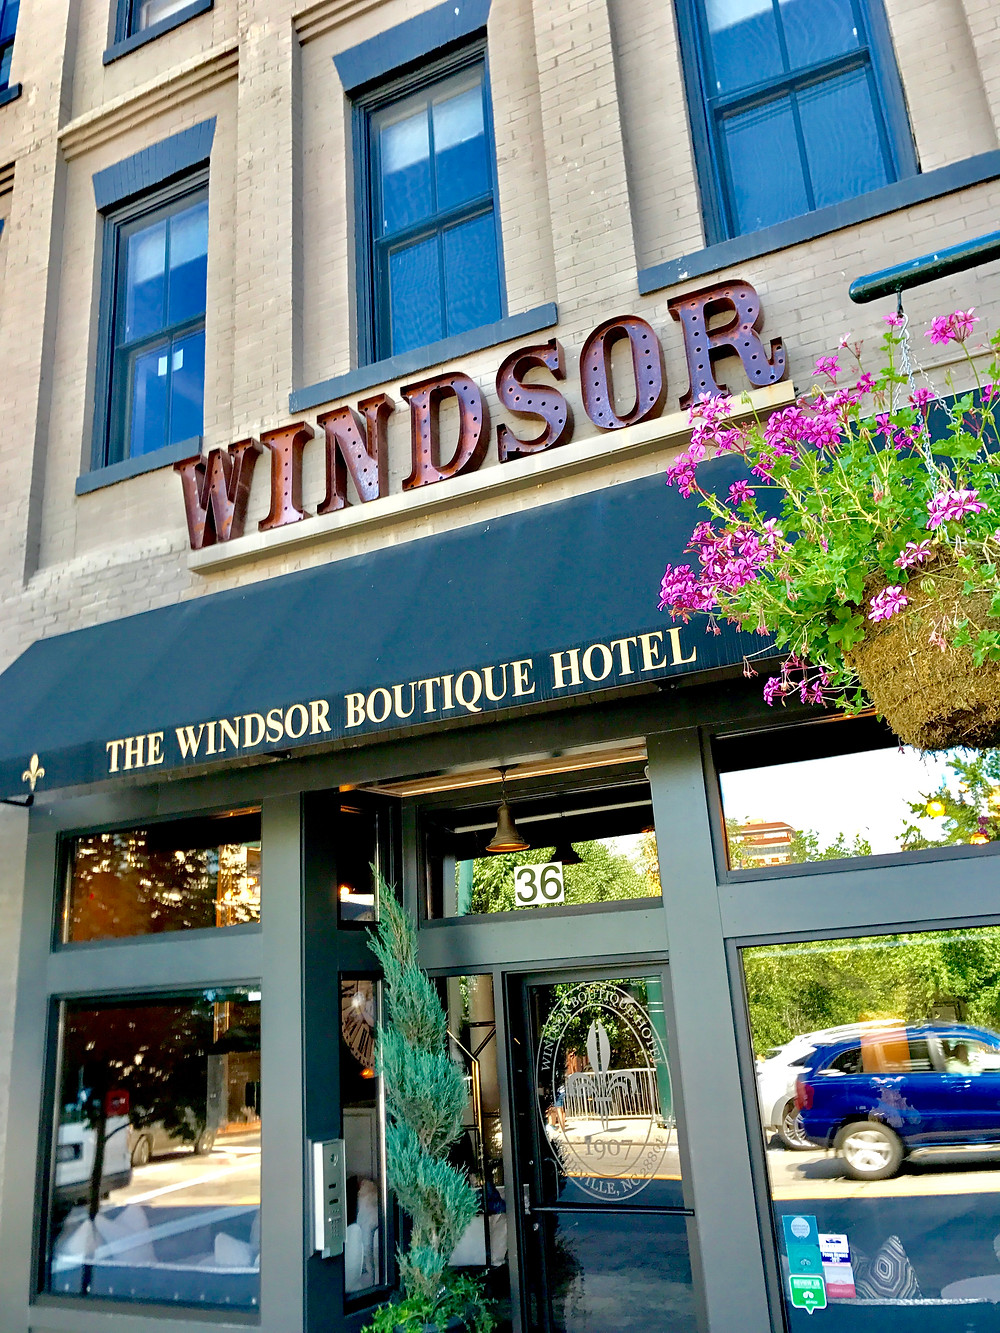 The Windsor Hotel in downtown Asheville, NC